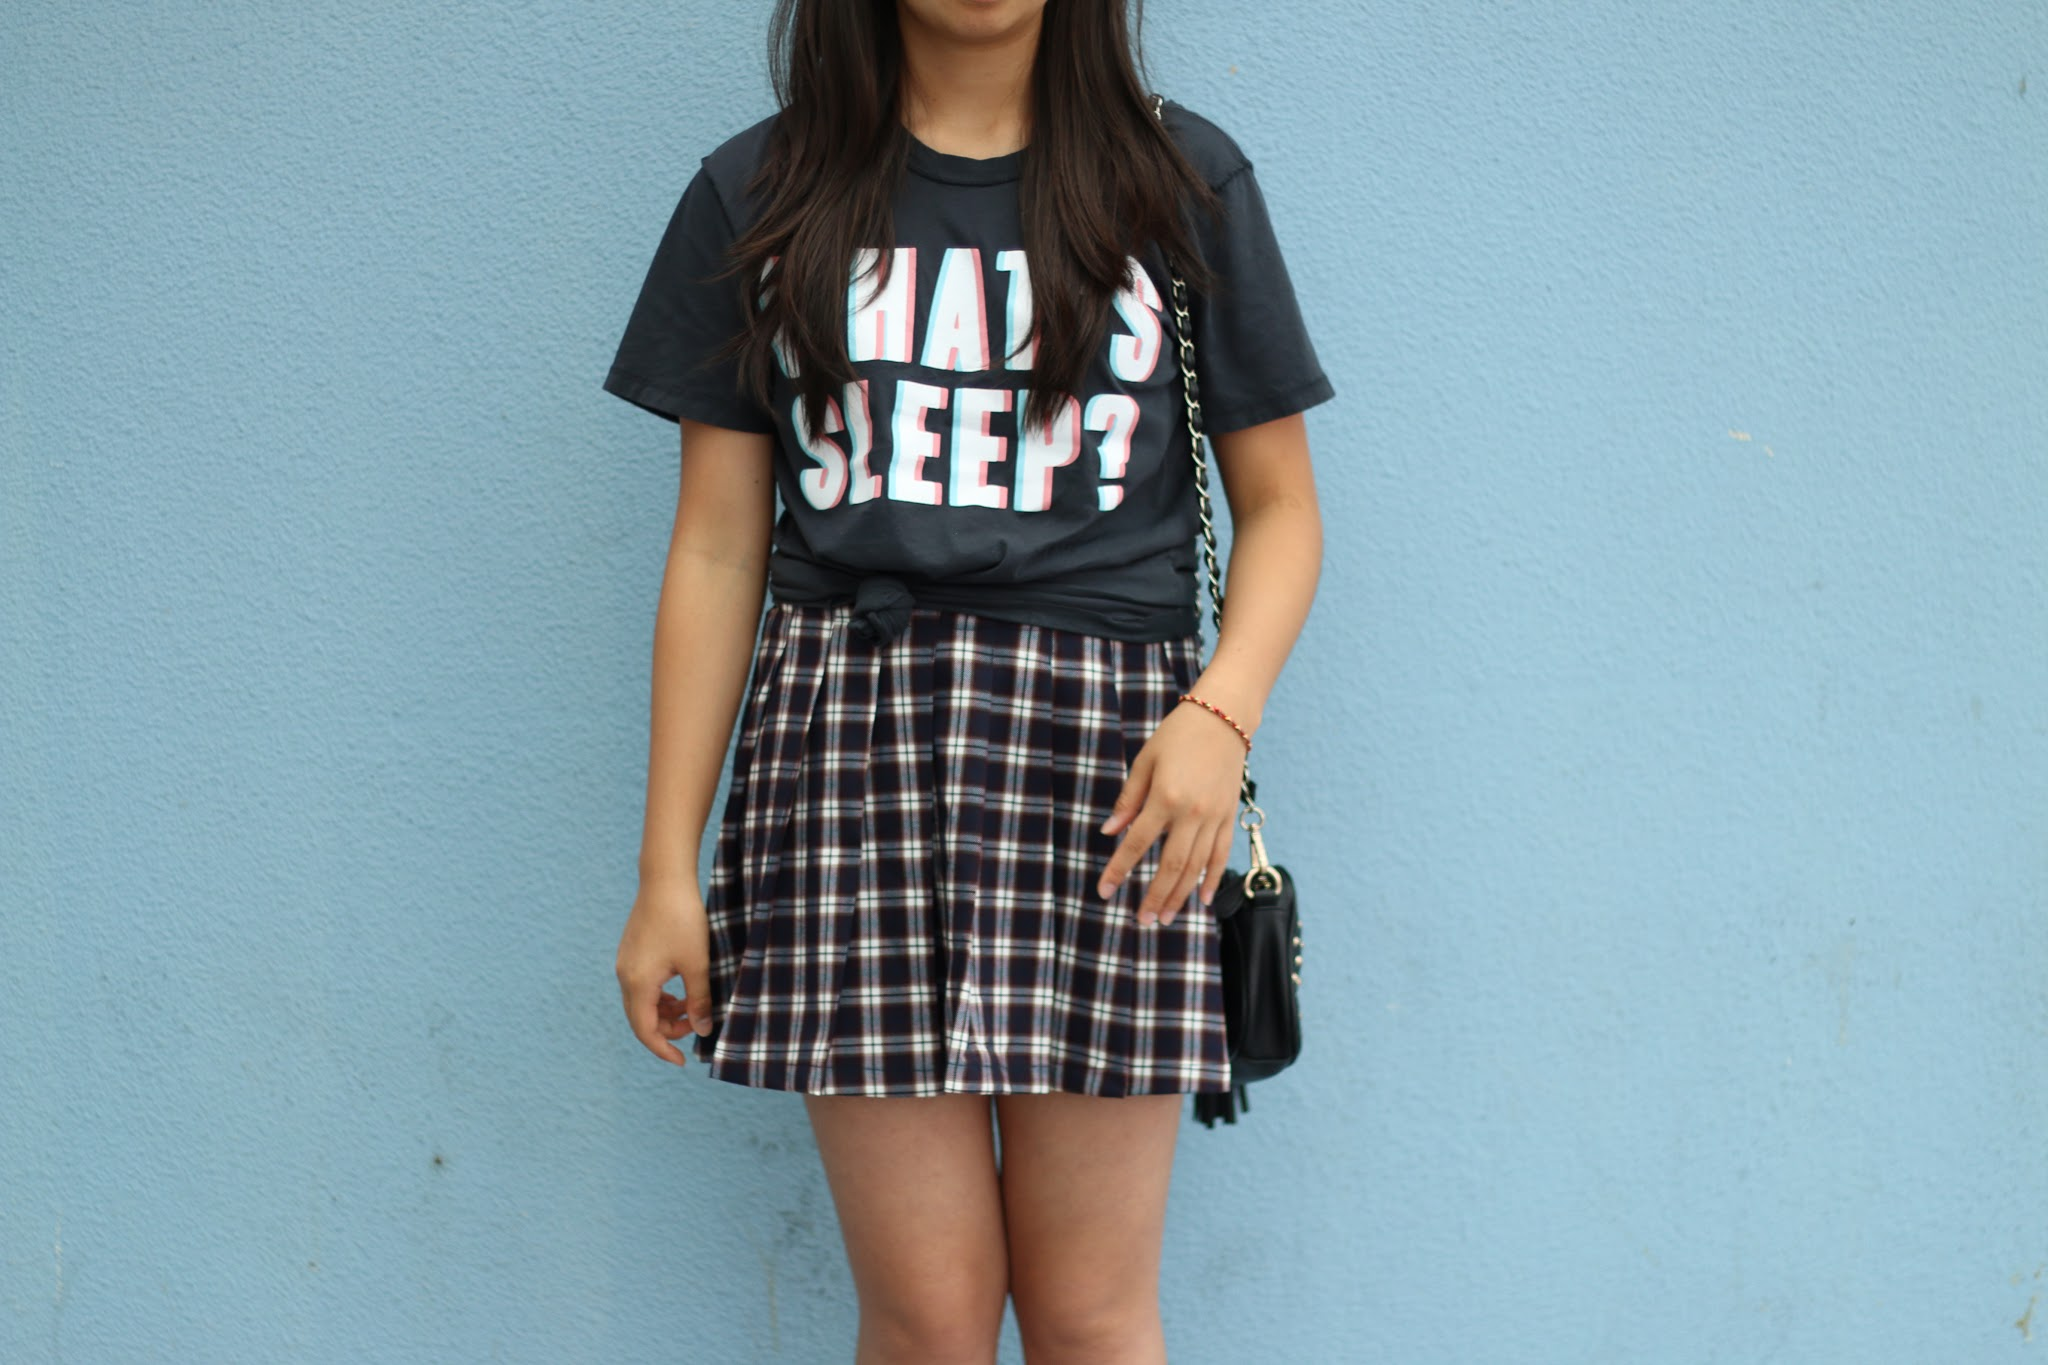 outfit of the day, style, forever 21, tumblr, fashion blogger, jac vanek, steve madden